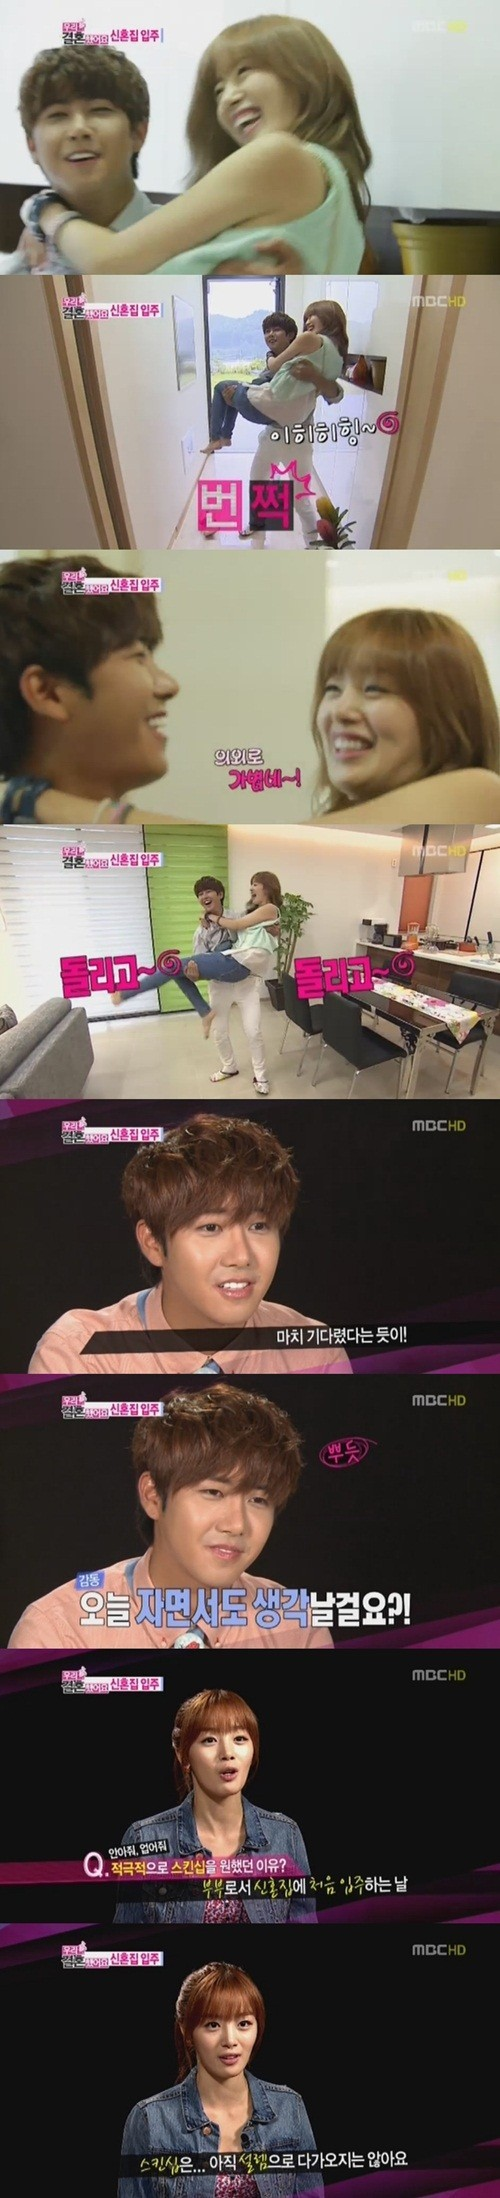 "Kwang Hee and Sunhwa's Active Skin-Ship Since Entering Their Honeymoon Home ""Carry Me"""